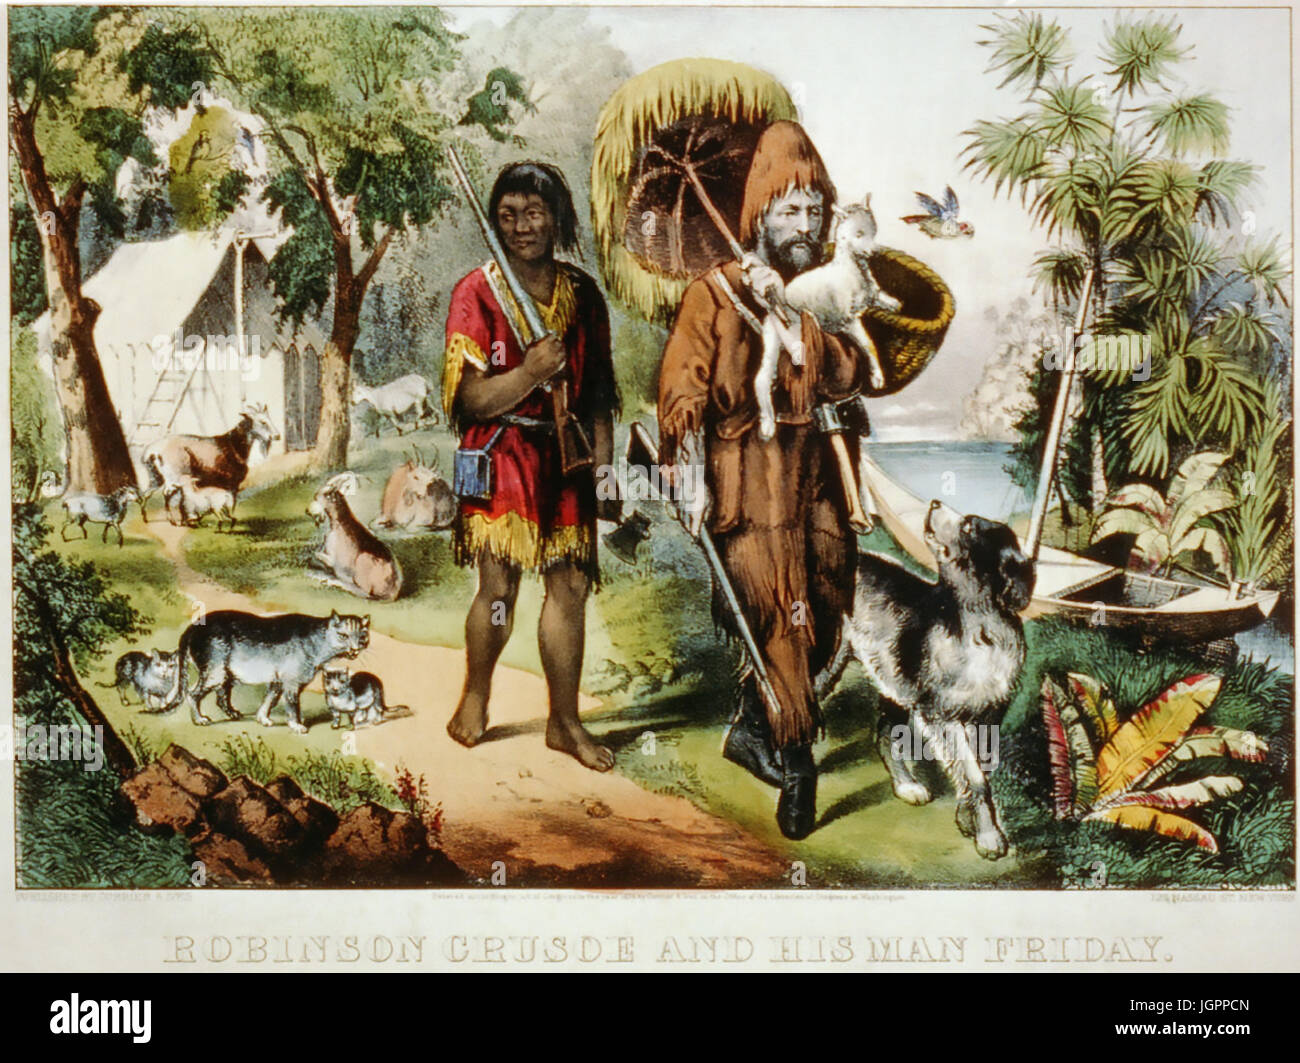 ROBINSON CRUSOE AND HIS MAN FRIDAY Currier & Ives print about 1875 - Stock Image